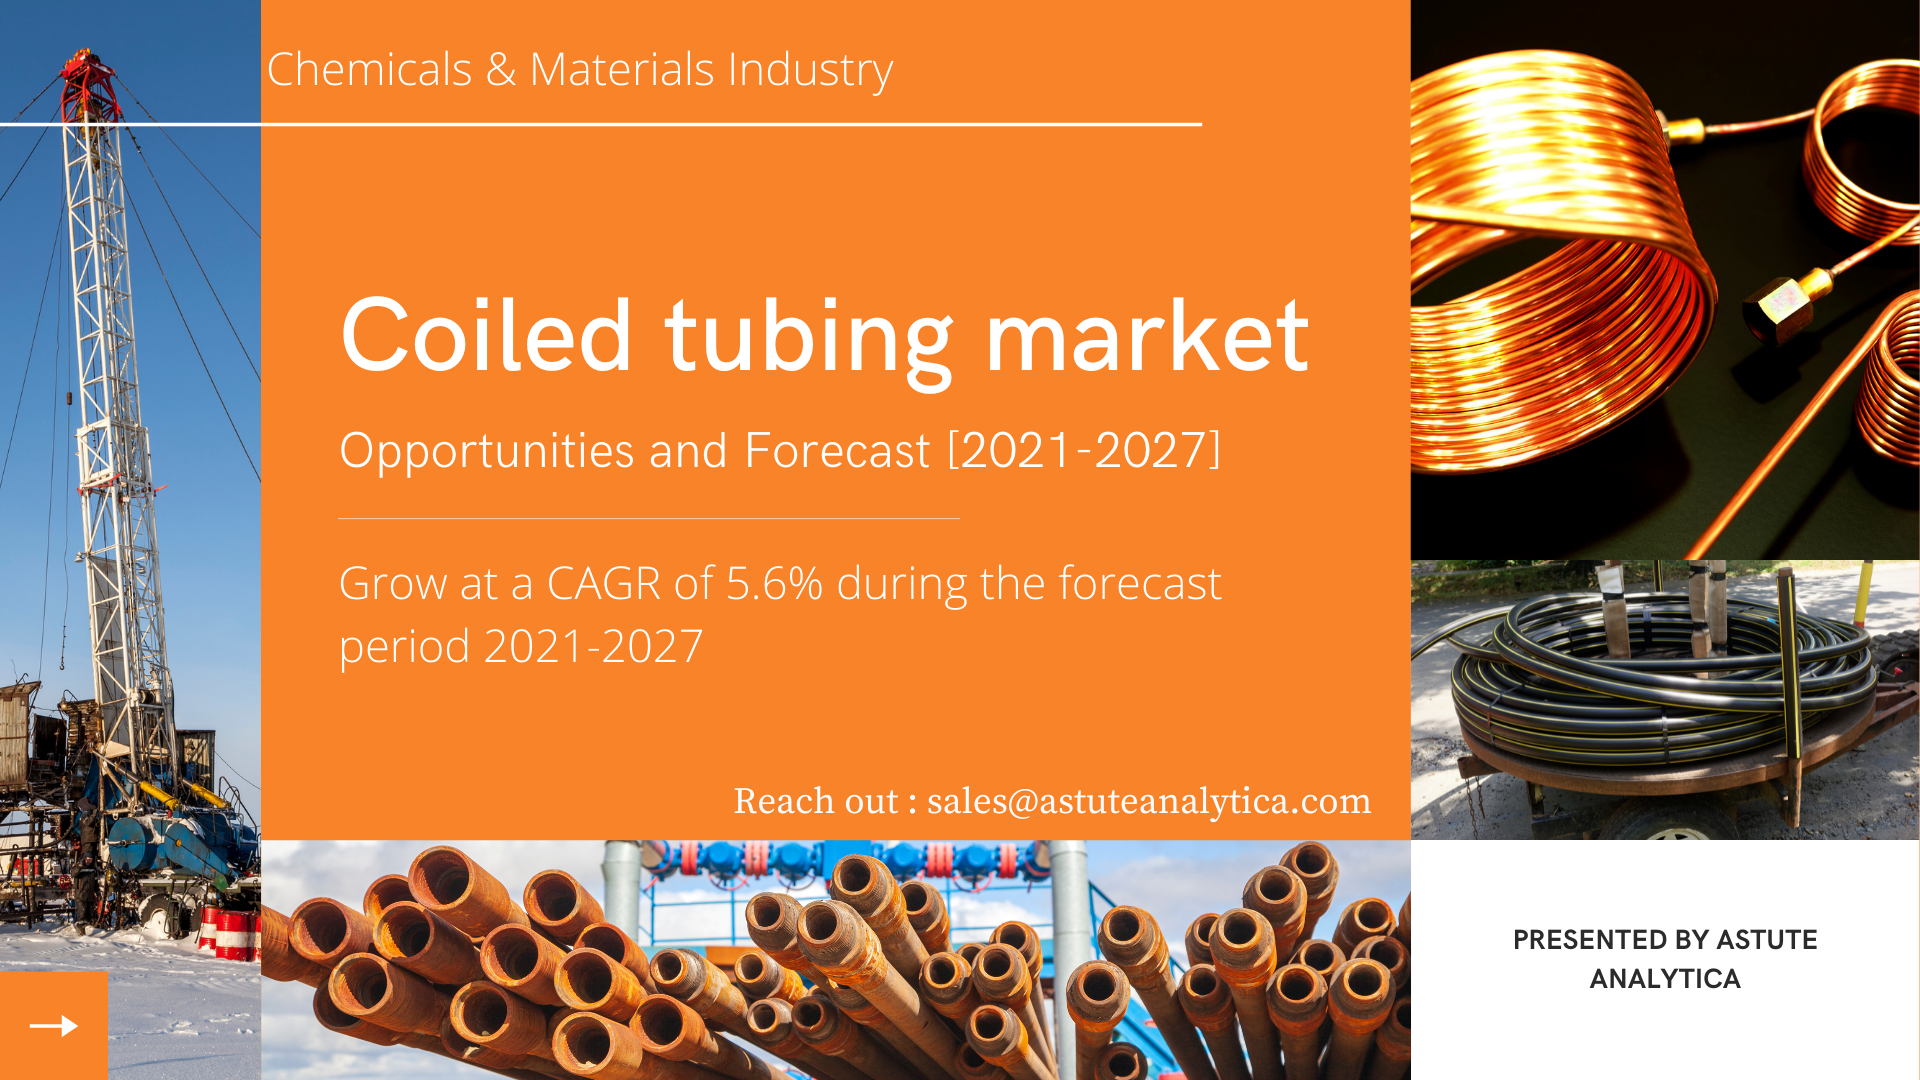 The Global coiled tubing market report delivers comprehensive analysis of the market structure along with a forecast of the various segments and sub-segment